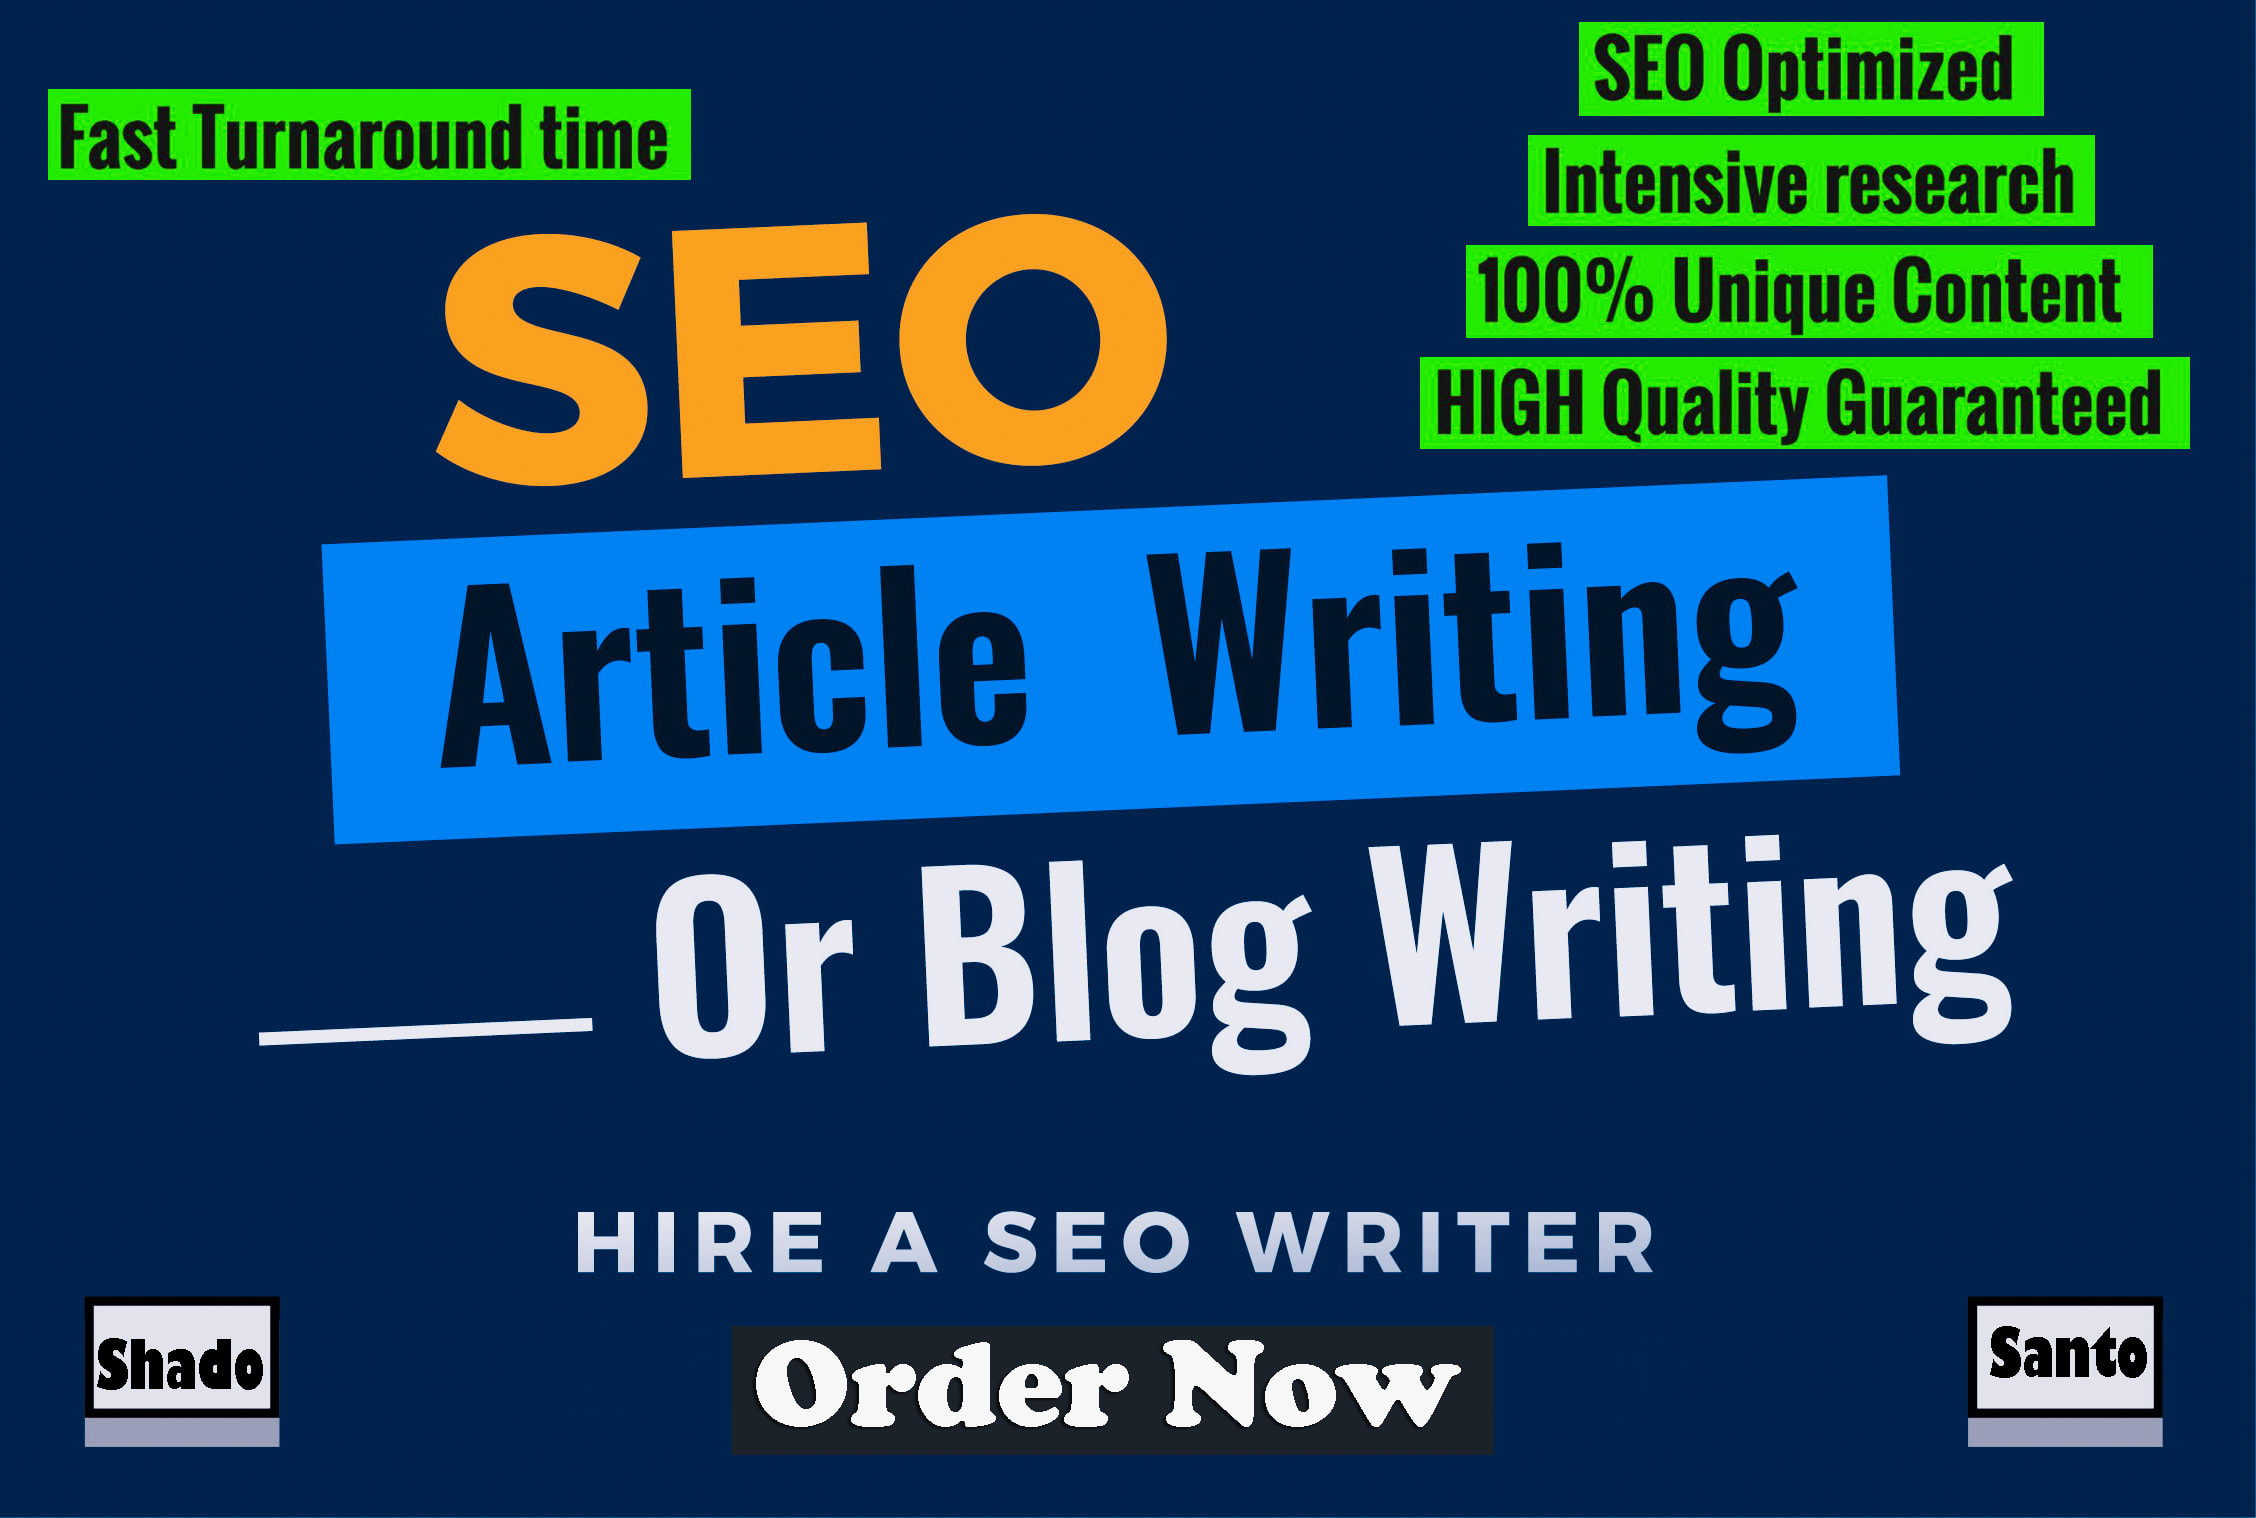 1000 words outstanding SEO articles writing a blog post within 24 hours